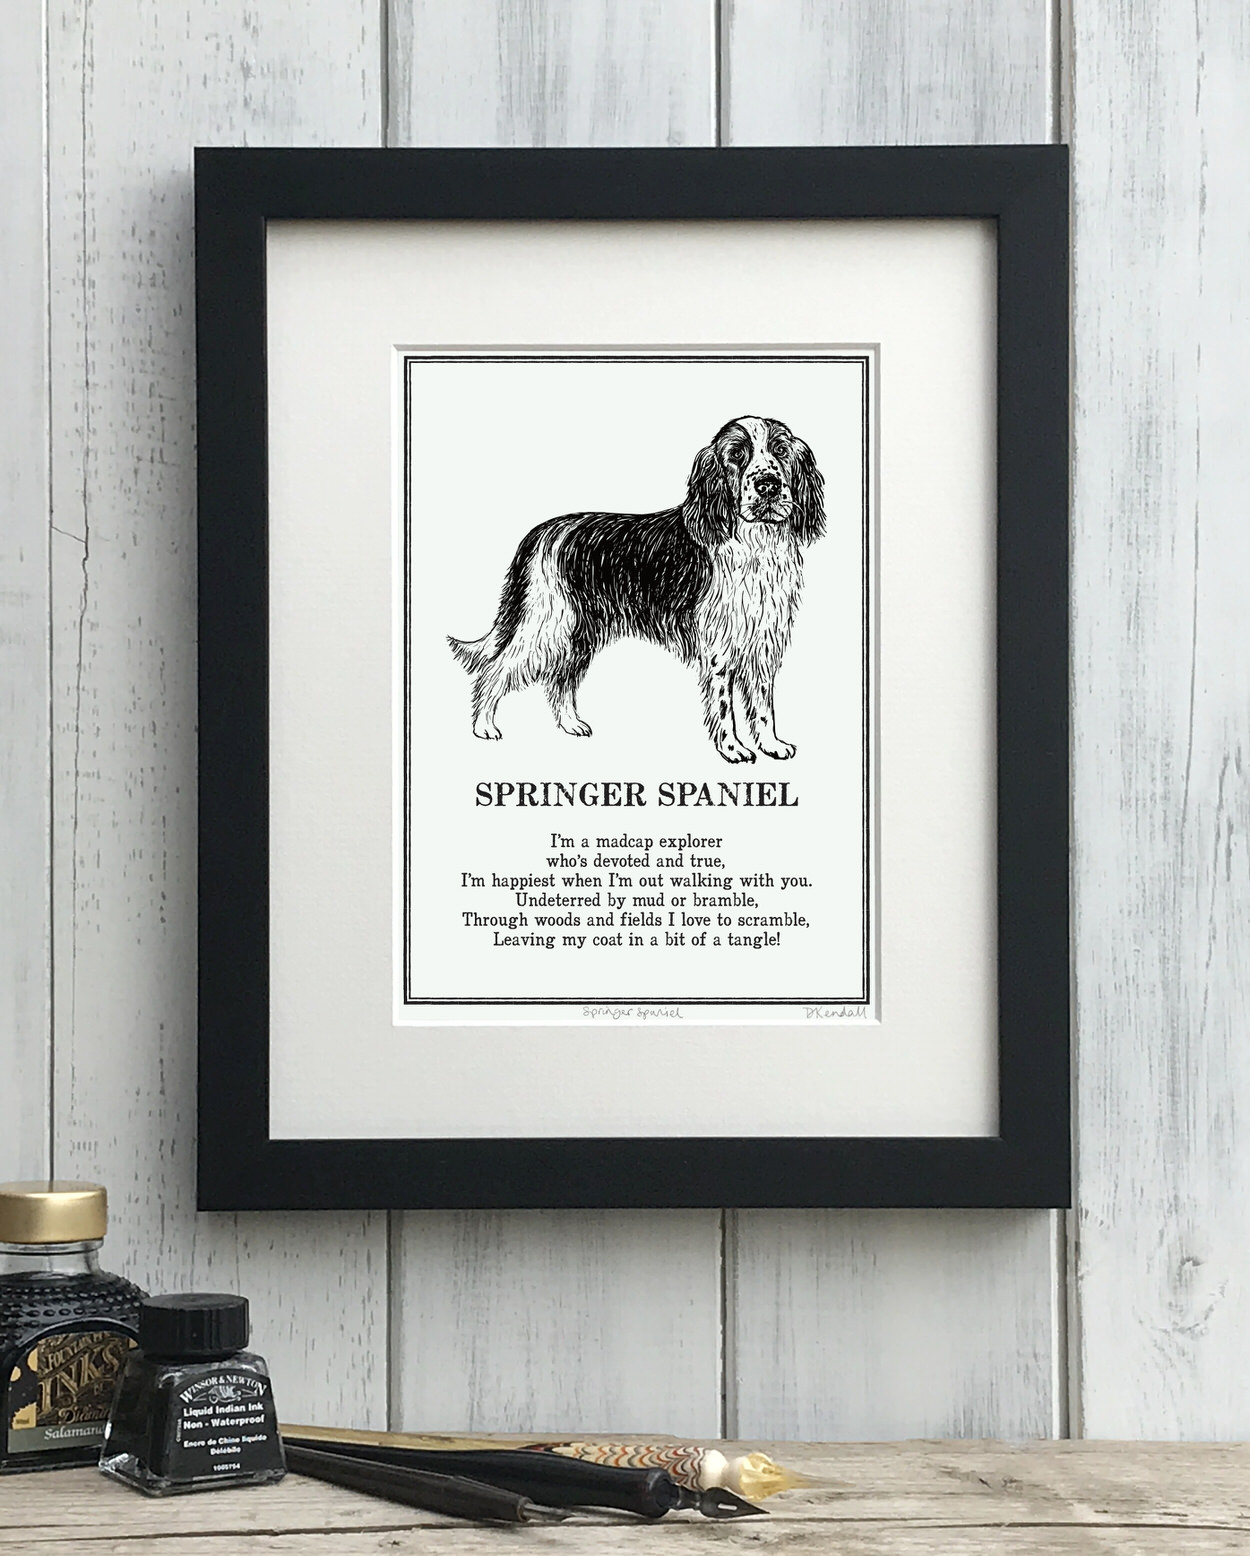 Springer Spaniel print illustrated poem by The Enlightened Hound